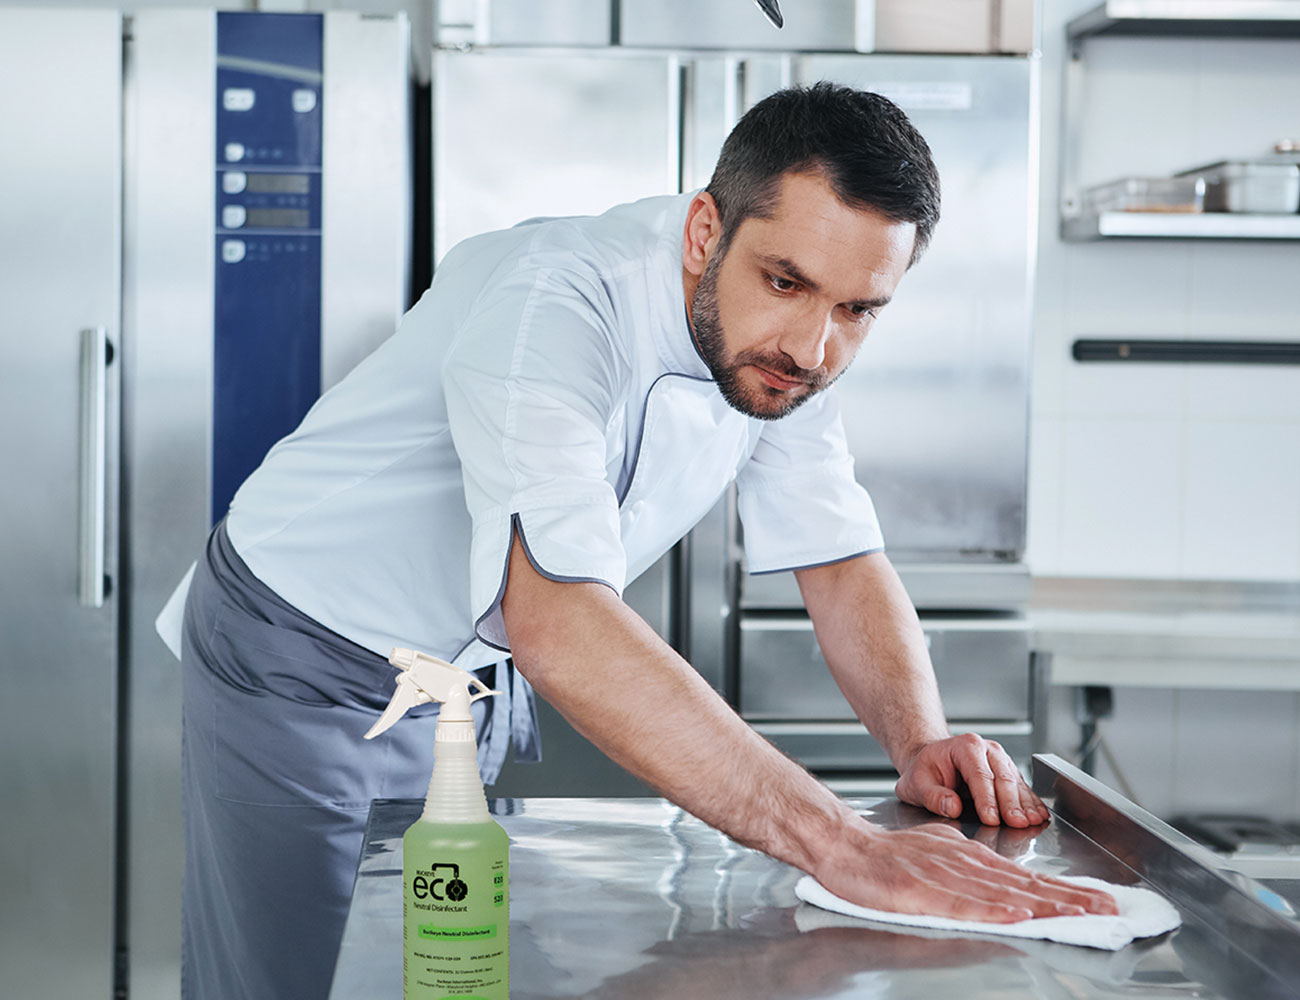 E23 Eco Disinfectant for your Kitchen